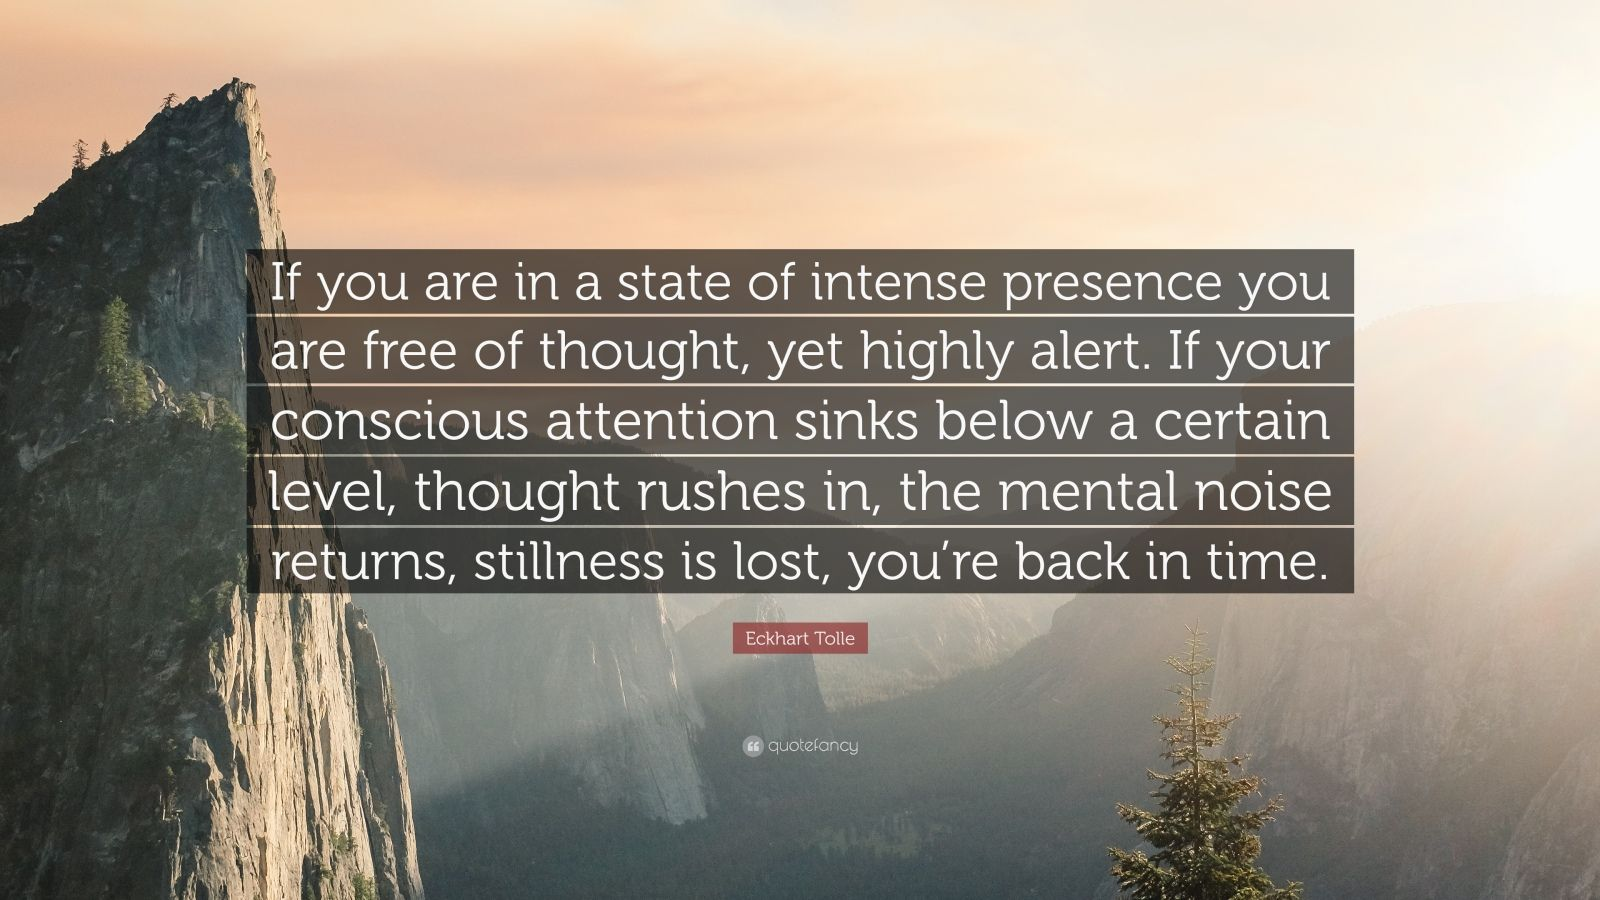 "Eckhart Tolle Quote: ""If you are in a state of intense presence you are free of thought, yet highly alert. If your conscious attention sinks below a certain level, thought rushes in, the mental noise returns, stillness is lost, you're back in time."""